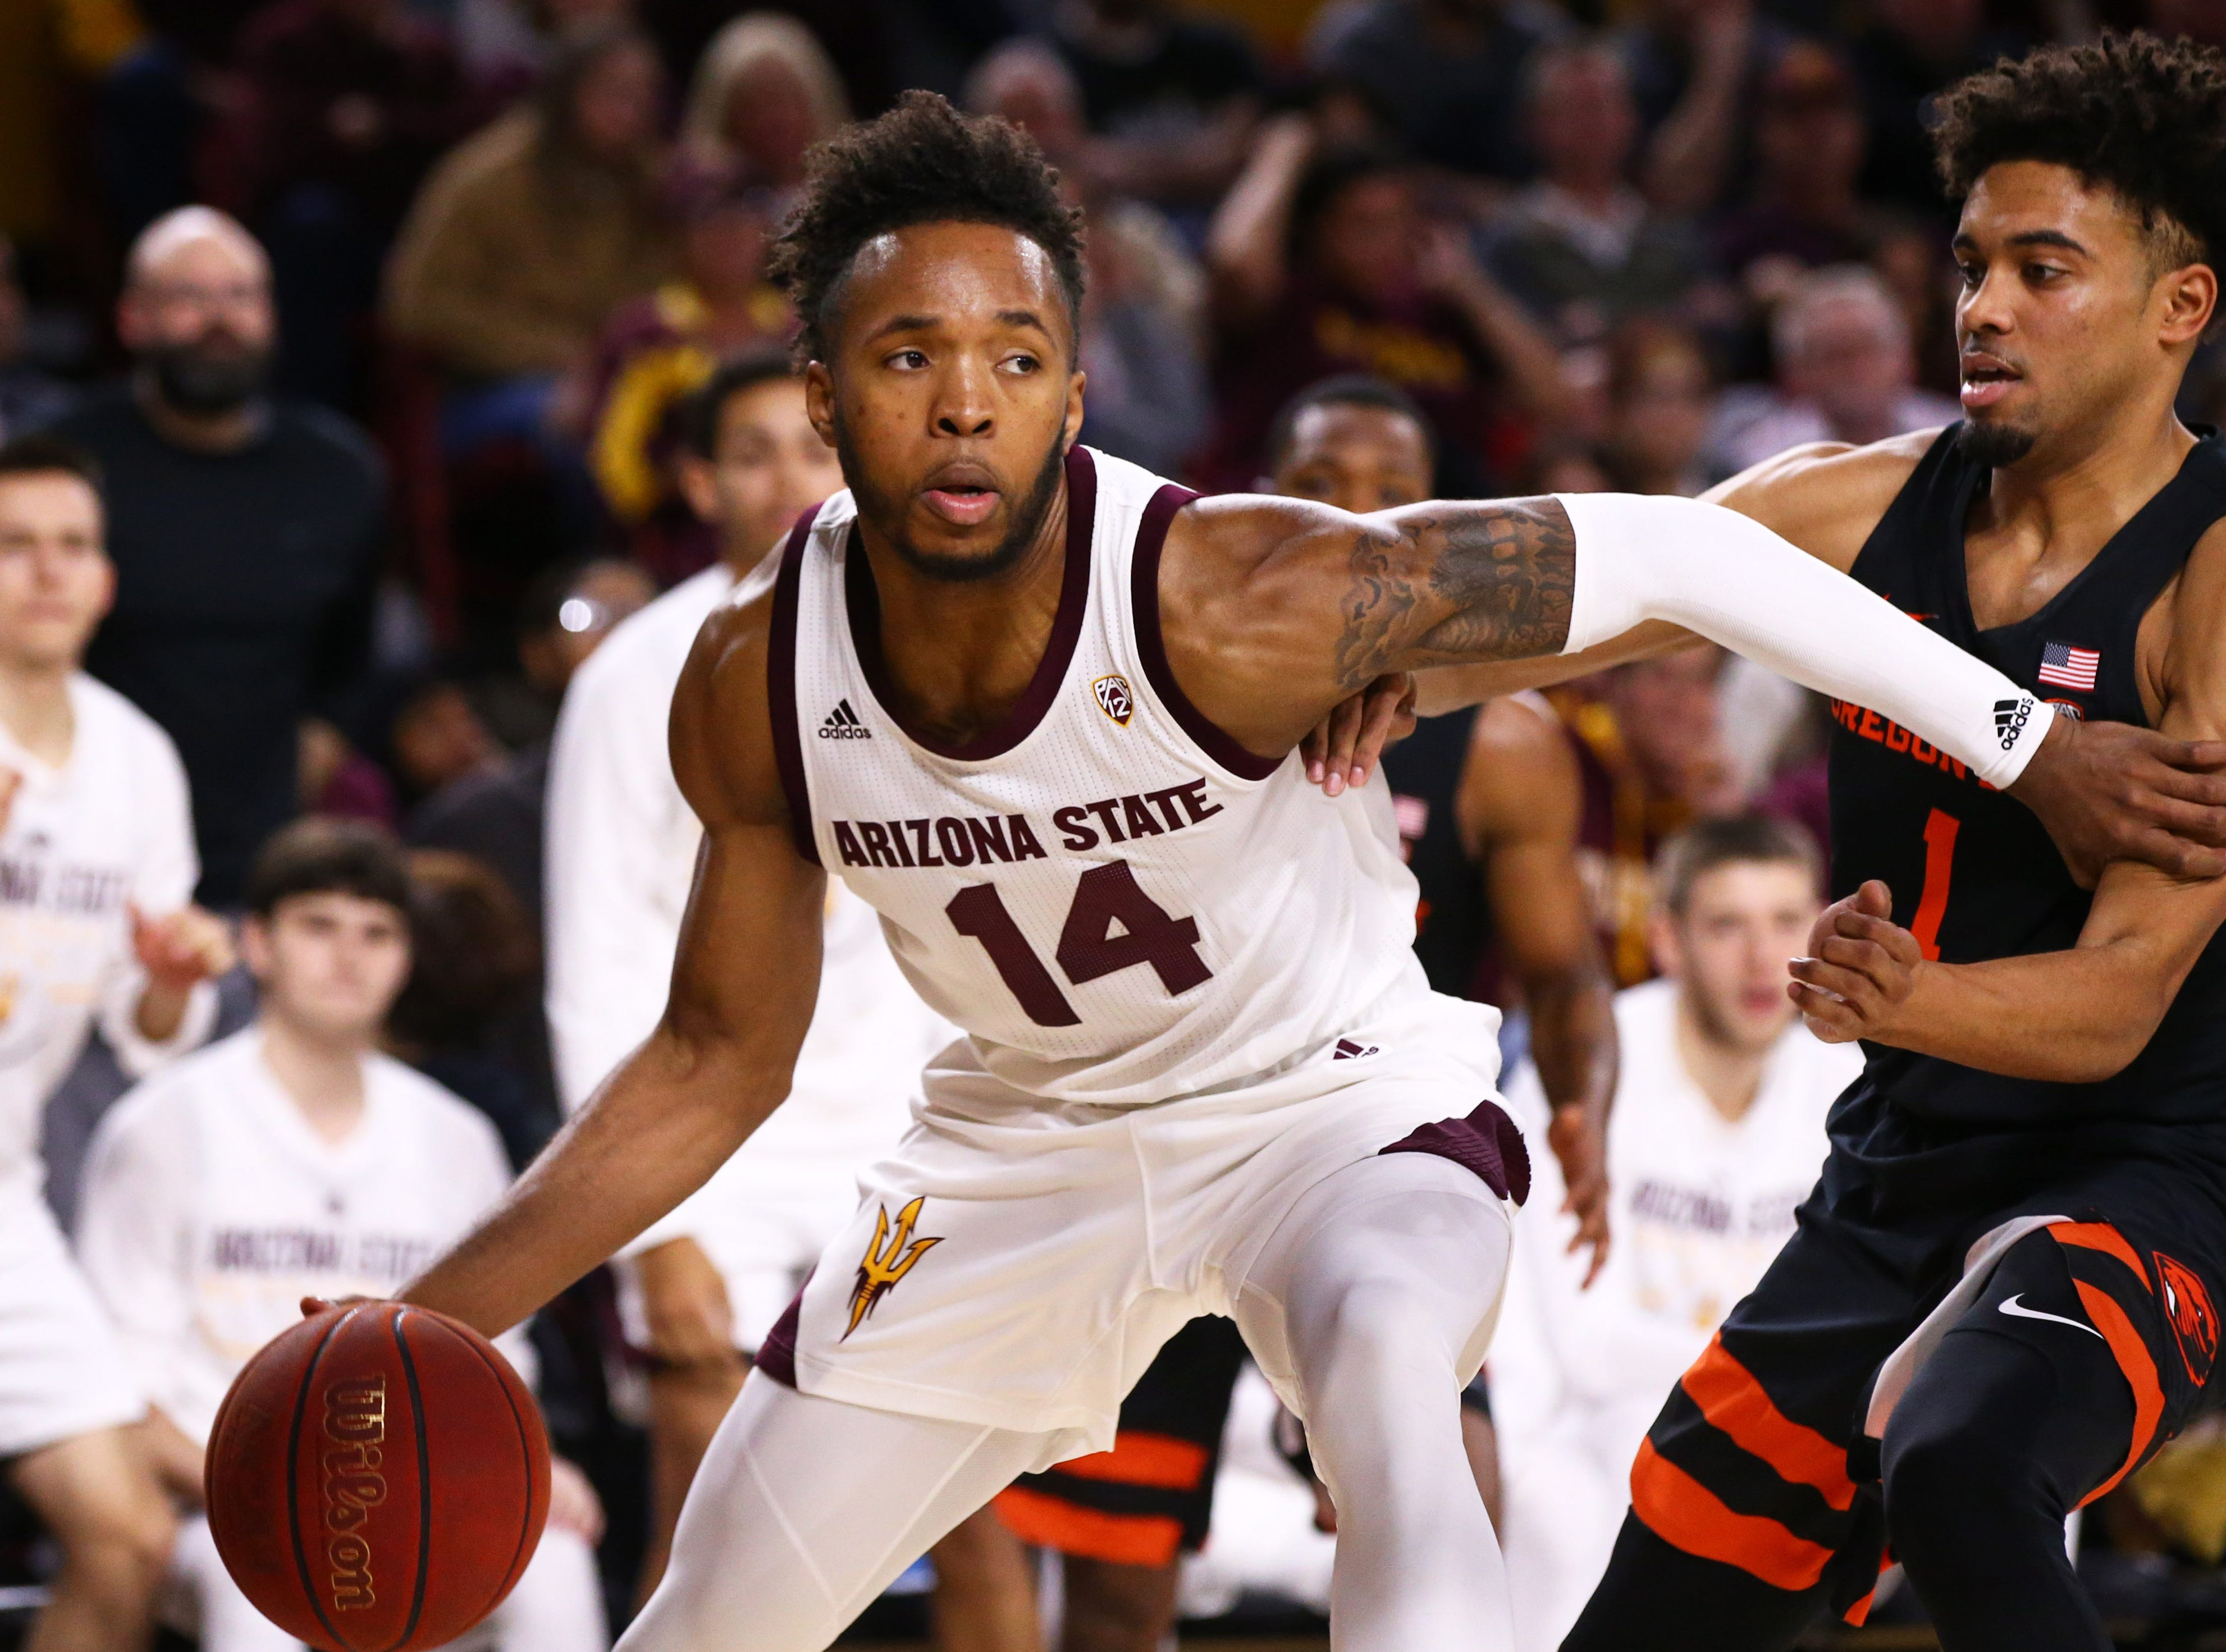 Arizona State Sun Devils forward 	Kimani Lawrence against the Oregon State Beavers in the second half on Jan. 17 at Wells Fargo Arena in Tempe.